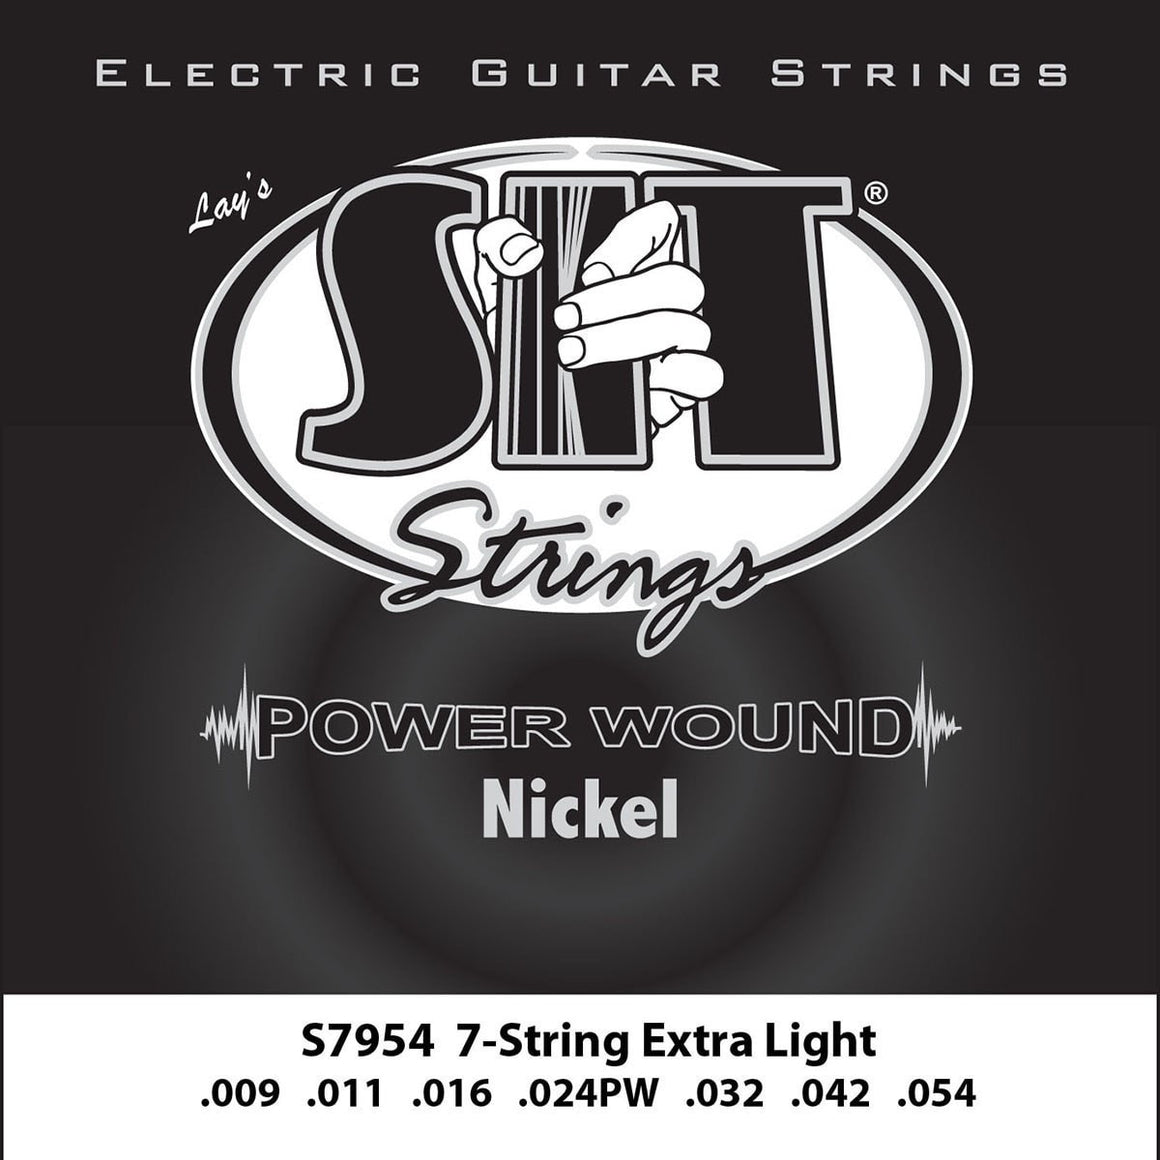 SIT Strings Electric Guitar Strings SIT Power Wound Nickel 7 String Extra Light Electric Guitar Strings